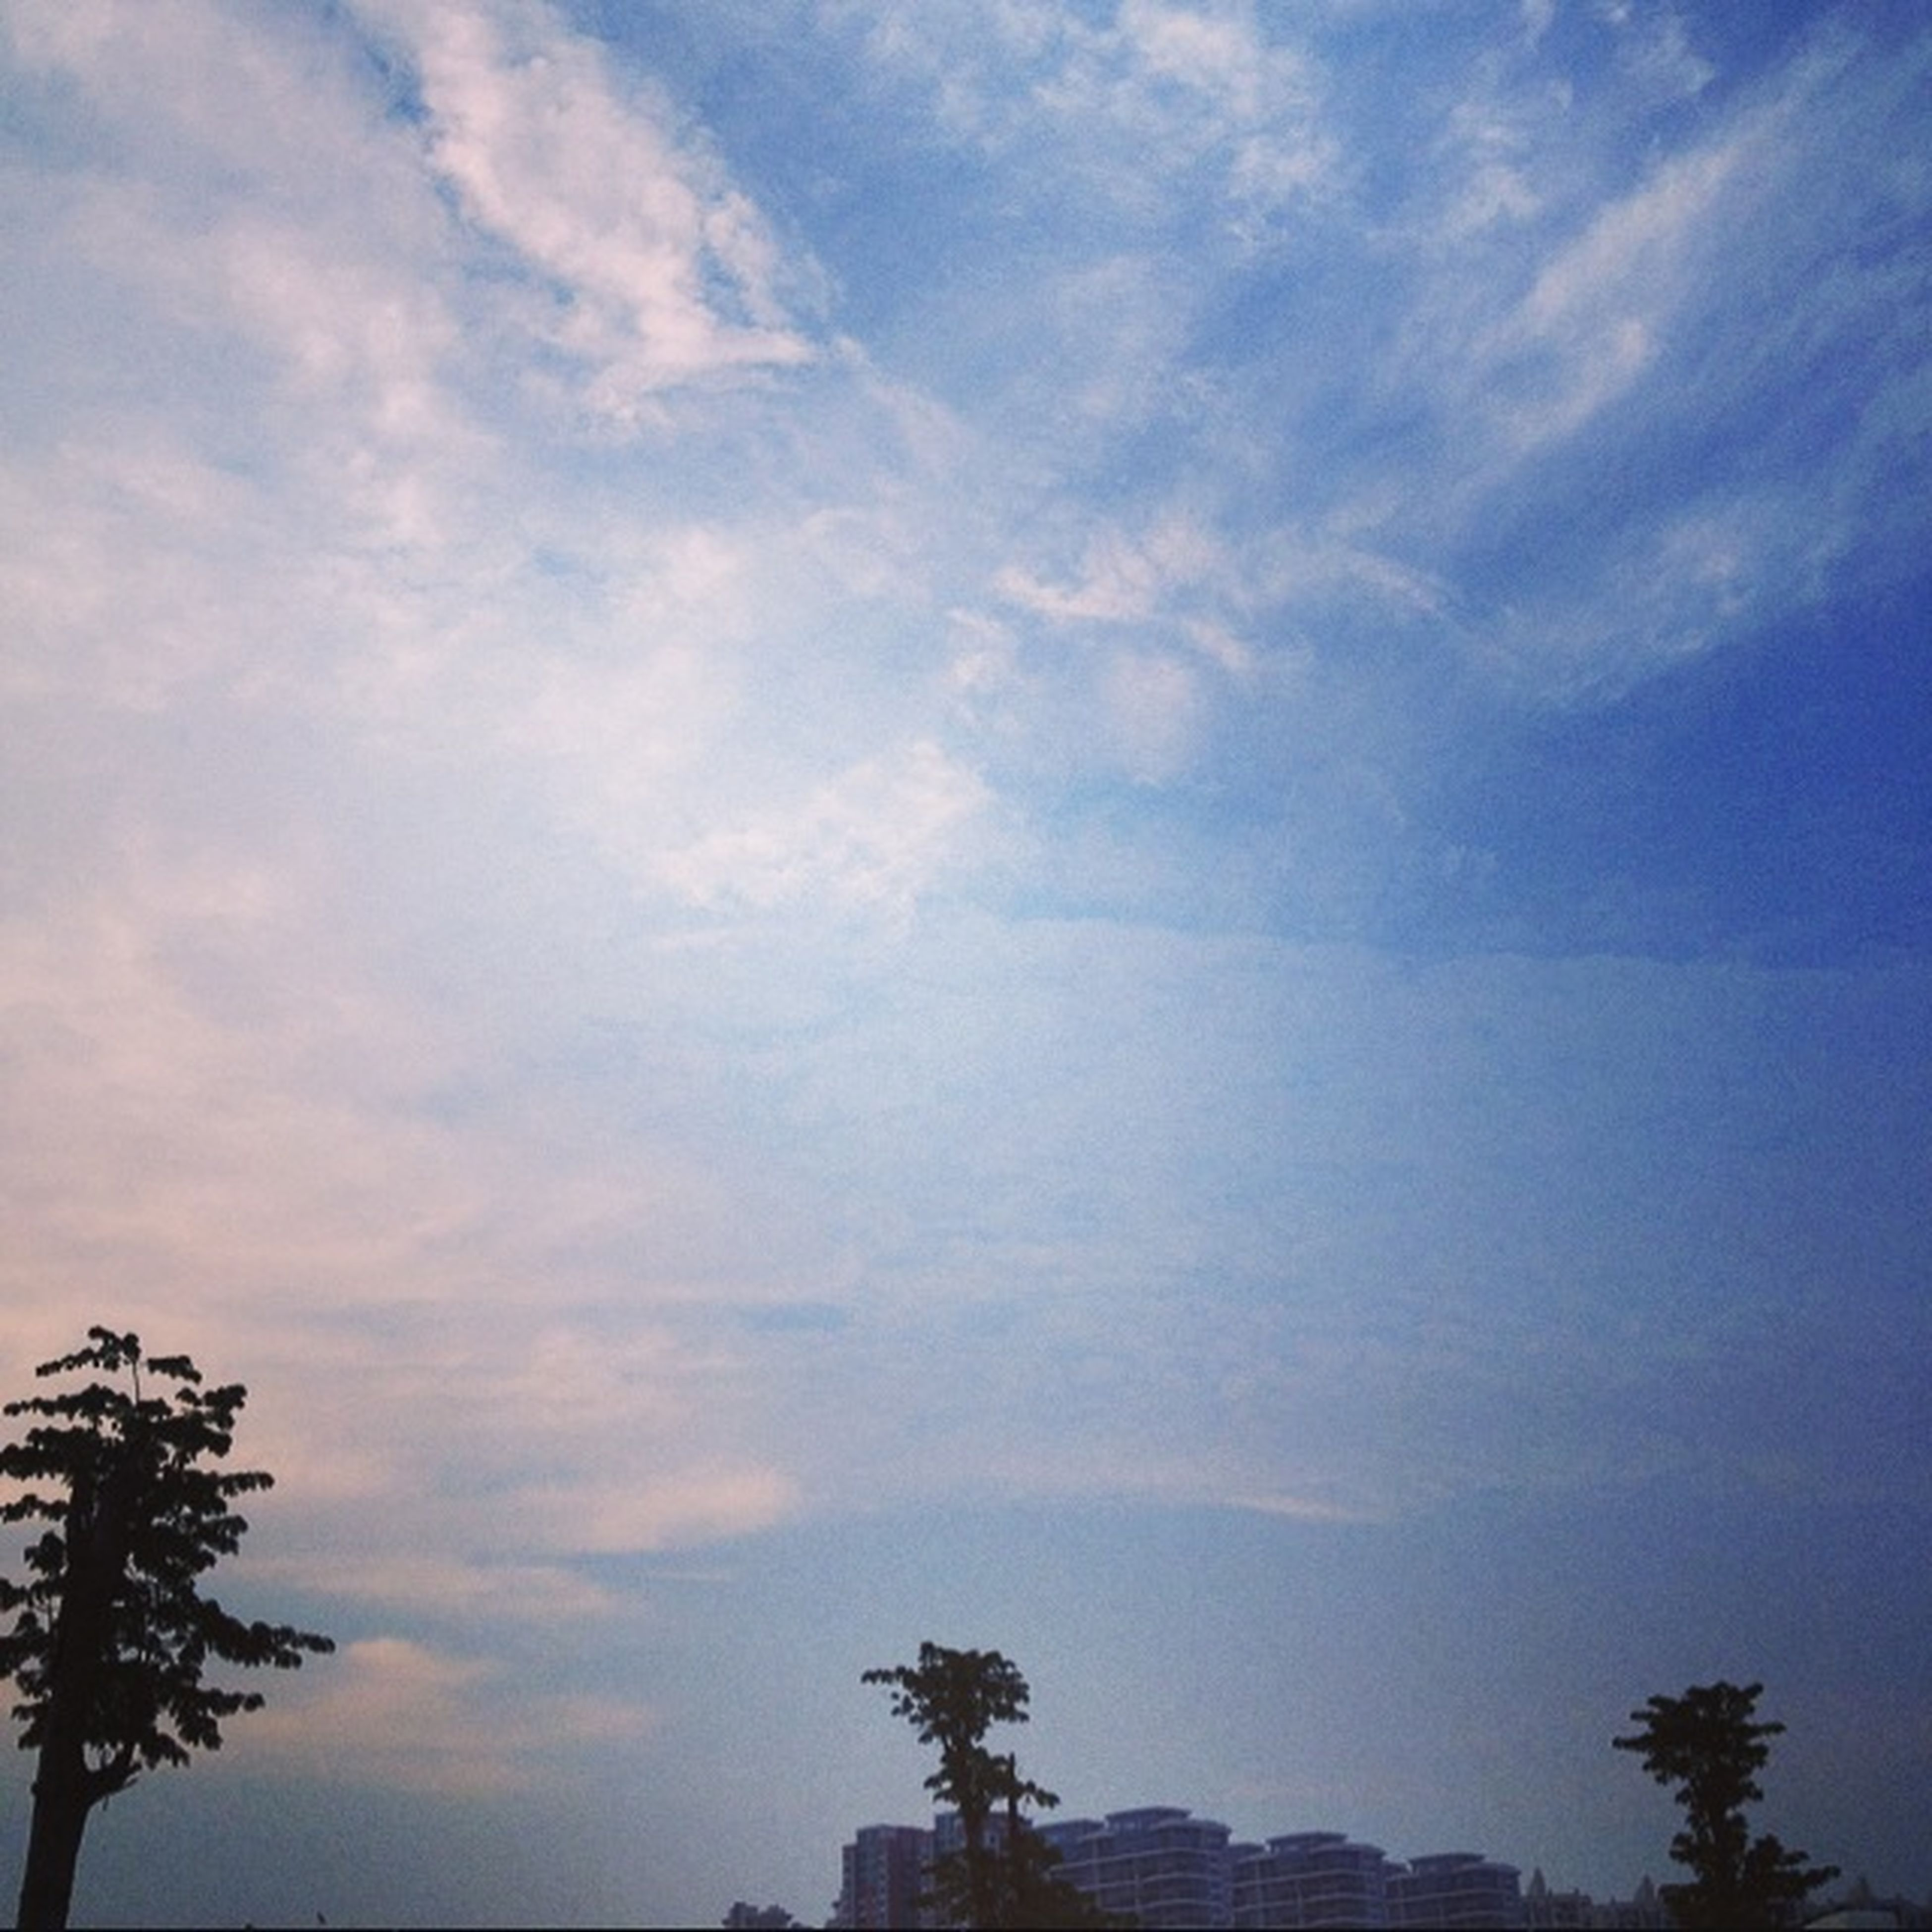 sky, tree, low angle view, silhouette, tranquility, cloud - sky, beauty in nature, tranquil scene, scenics, nature, blue, cloud, growth, cloudy, idyllic, outdoors, no people, dusk, high section, sunset